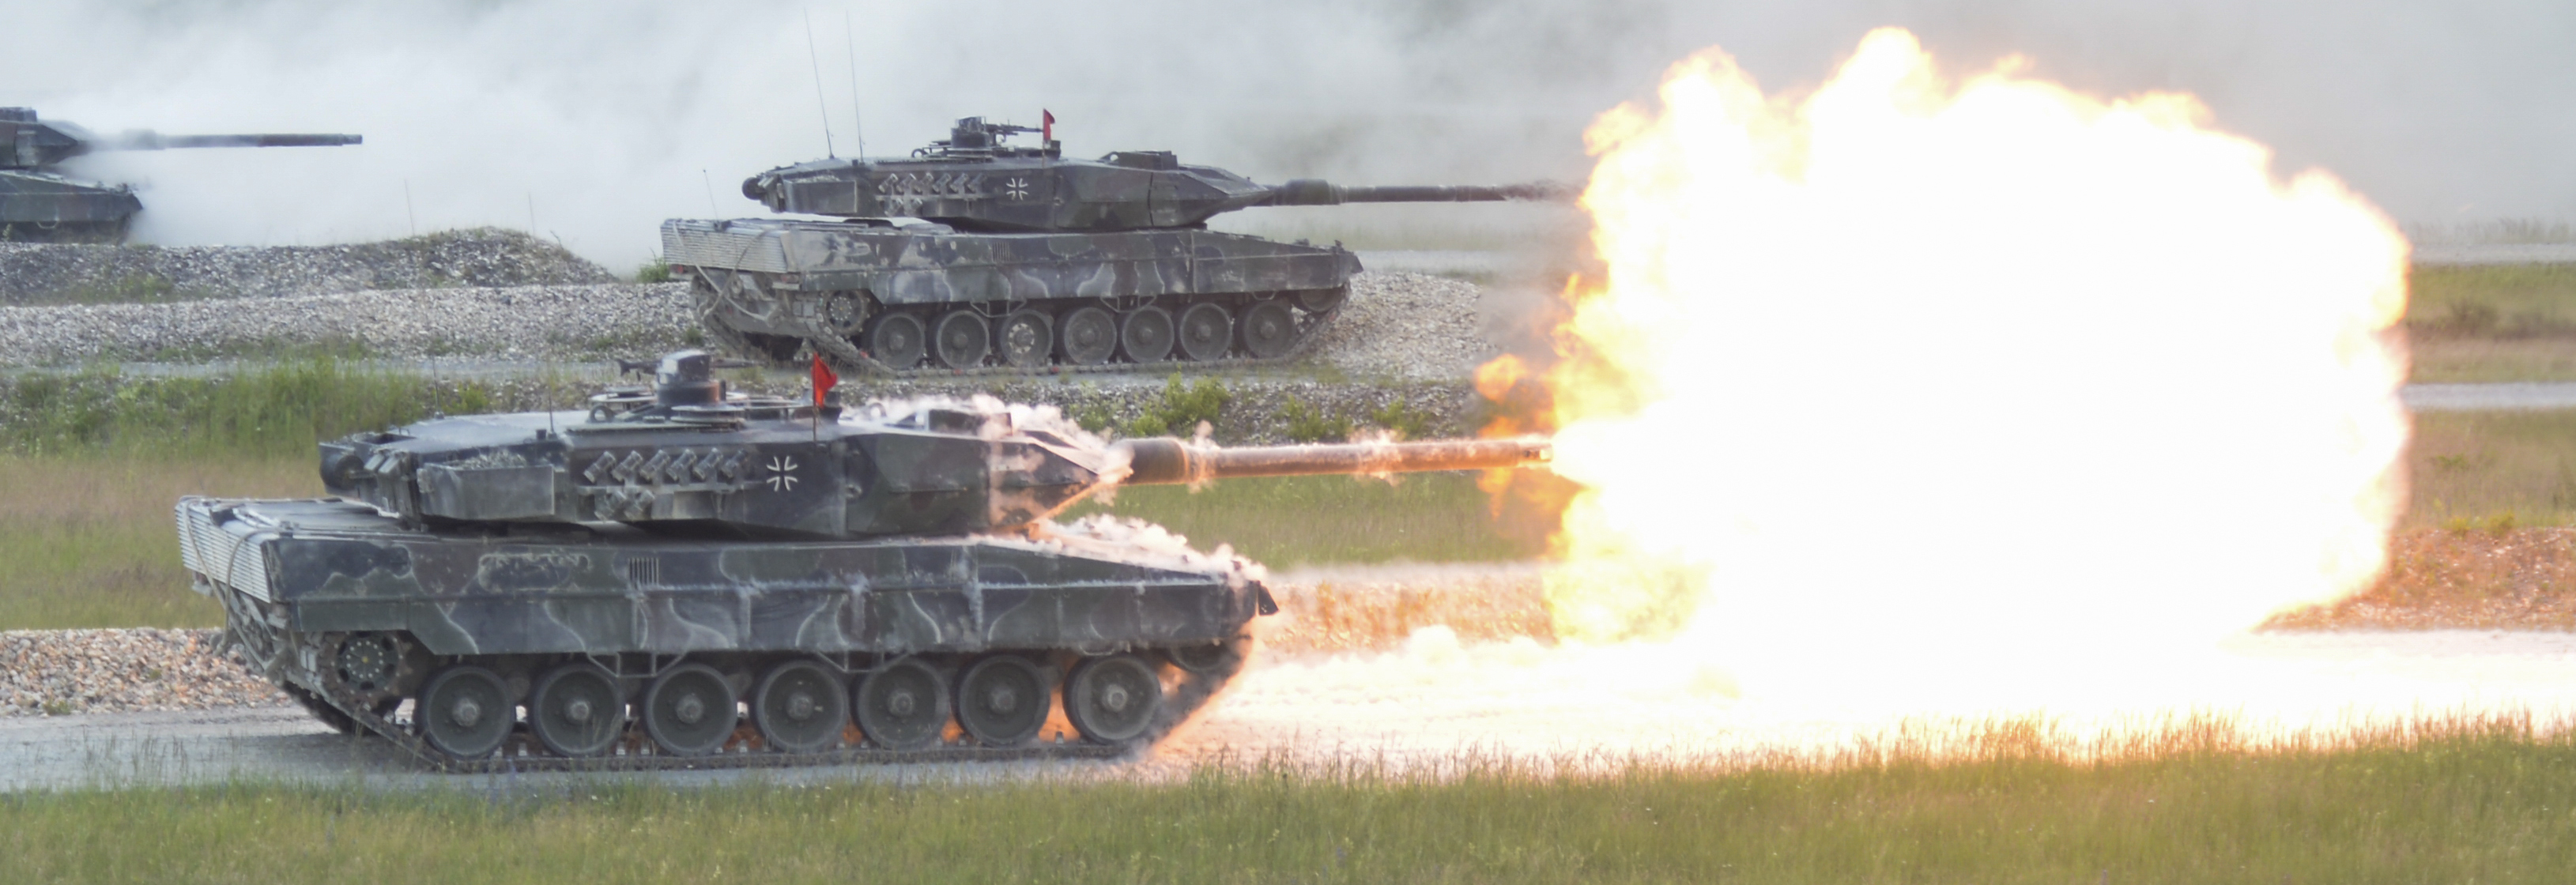 German_Leopard_2A6_from_3rd_Panzer_Battalion_fires_it's_main_gun_during_the_shoot-off_of_Stron...jpg